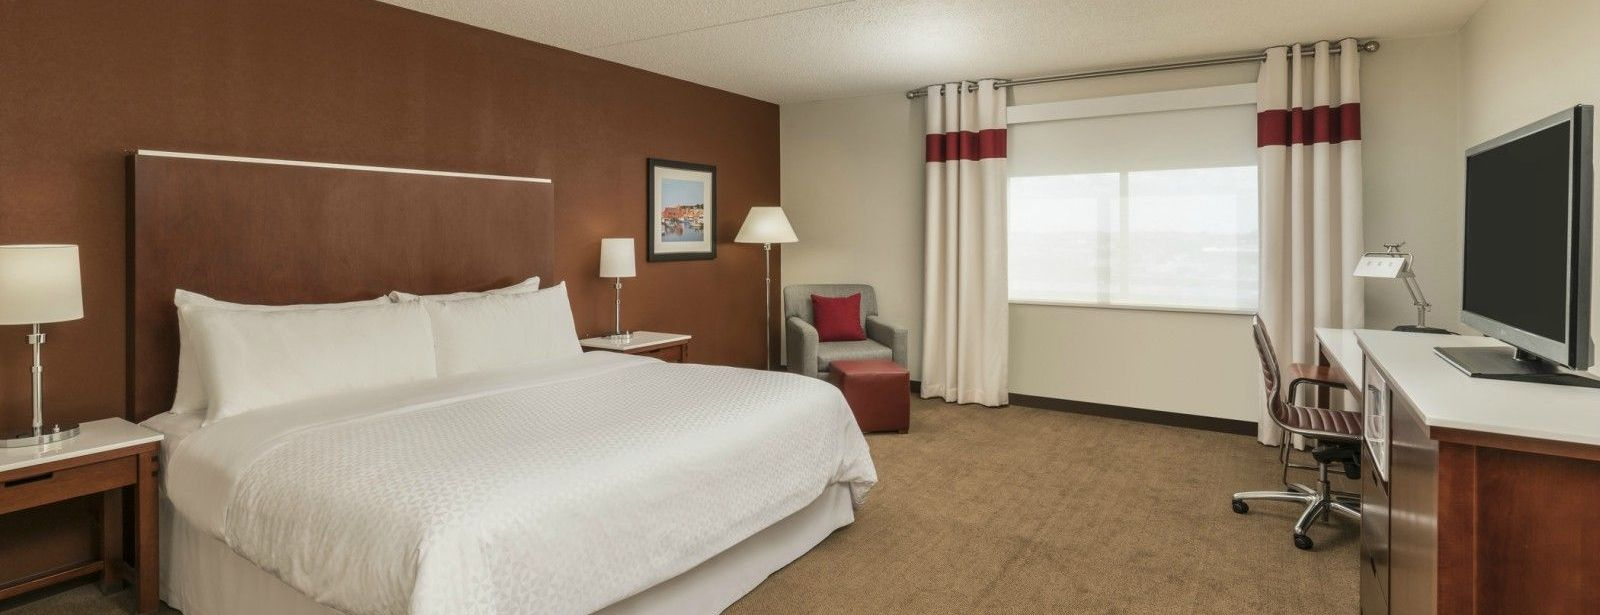 Logan Airport Accommodations - Traditional Room North